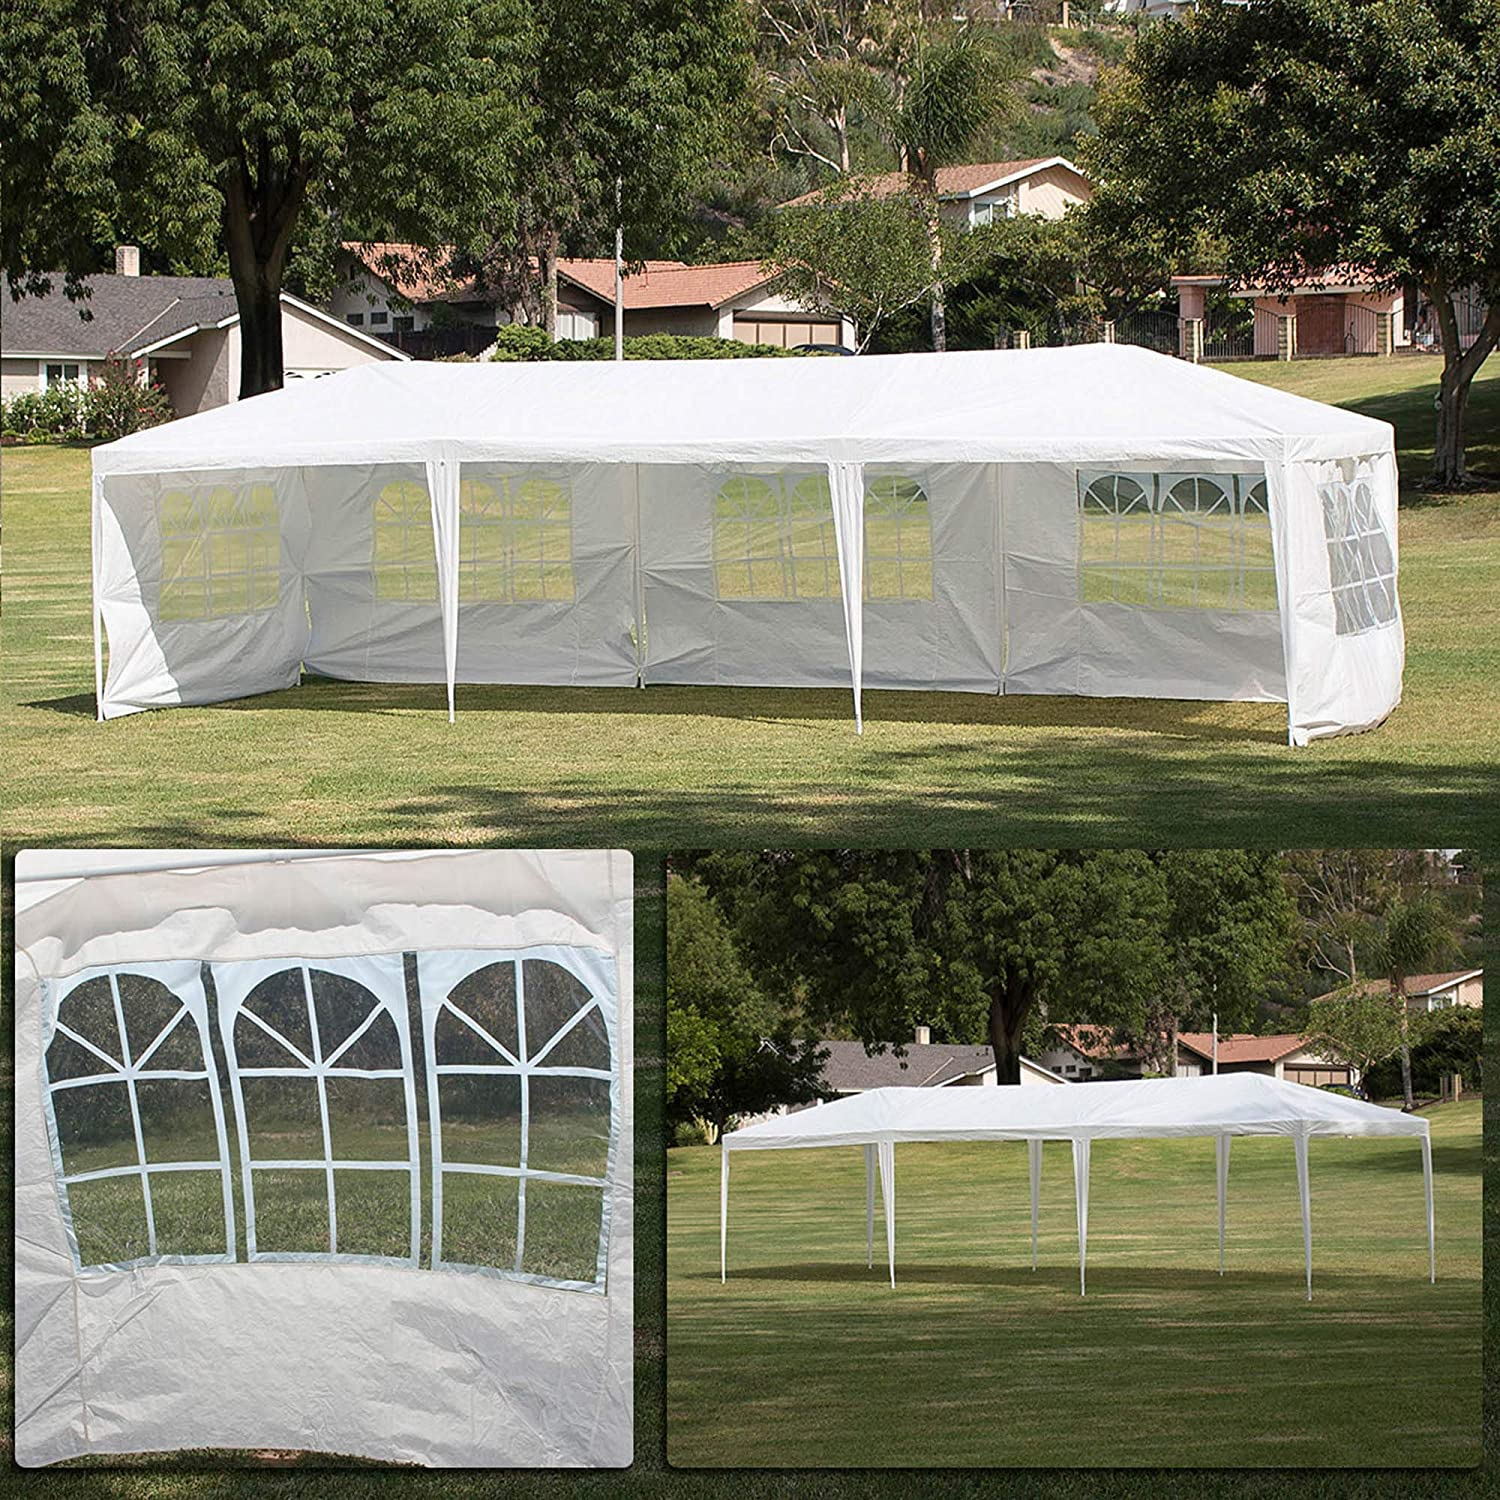 Amazon Com Belleze Large Heavy Duty 10 X 30 Ft Wedding Canopy Party Uv Event Dancing Gazebo Removable Side Walls Outdoors White Garden Outdoor